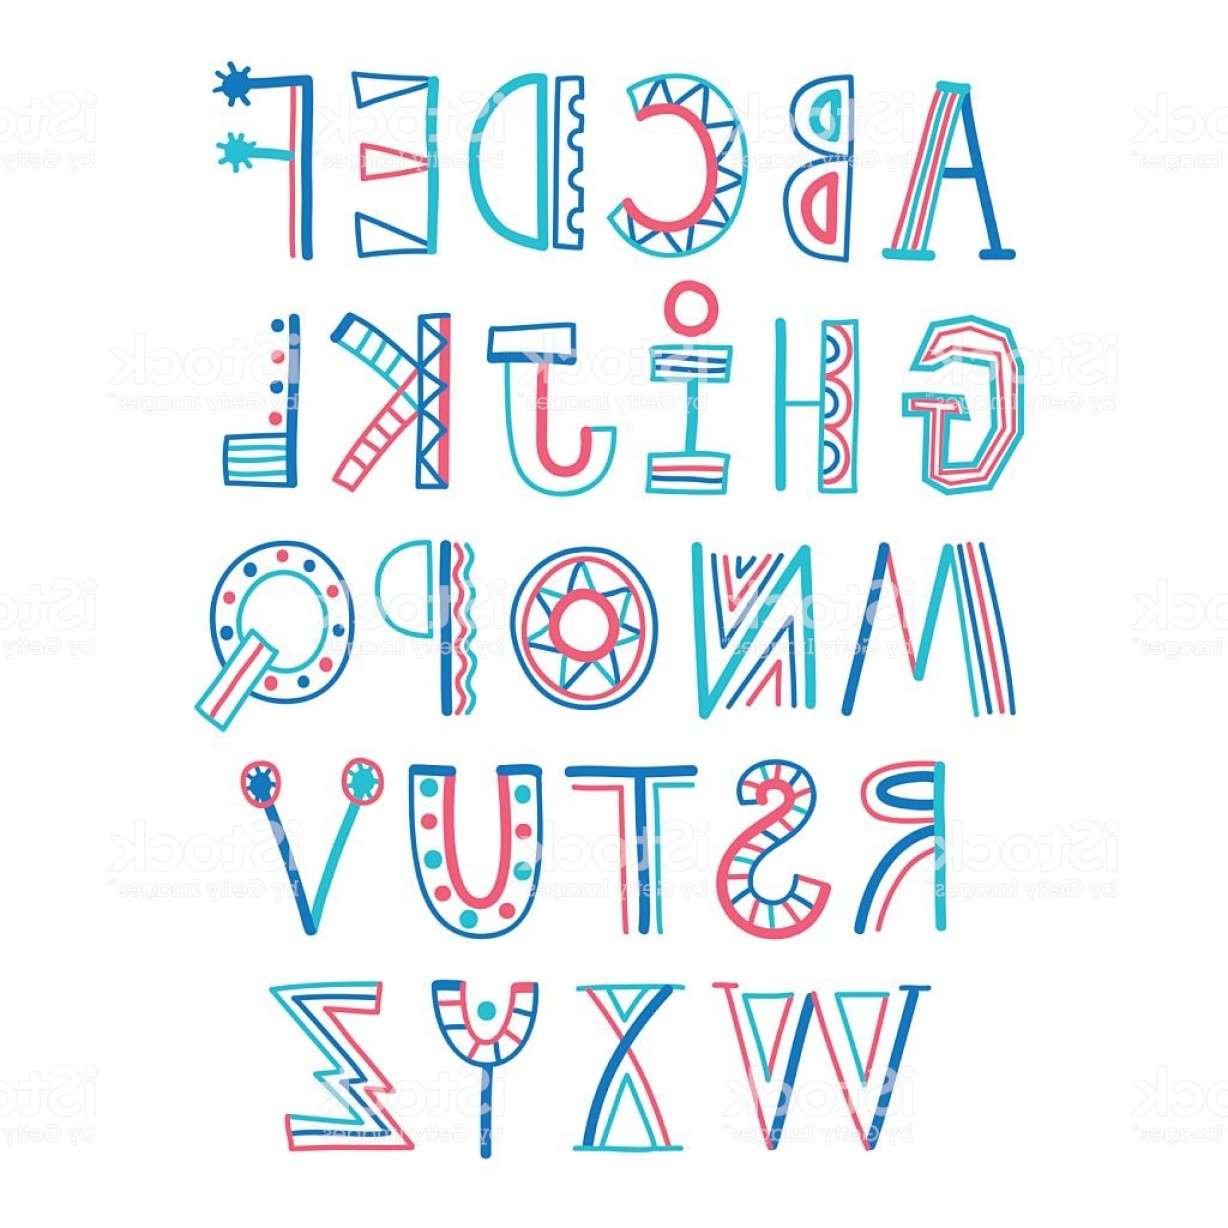 Decorative Font Vector Illustration: Childish Style Colorful Decorative Font Gm